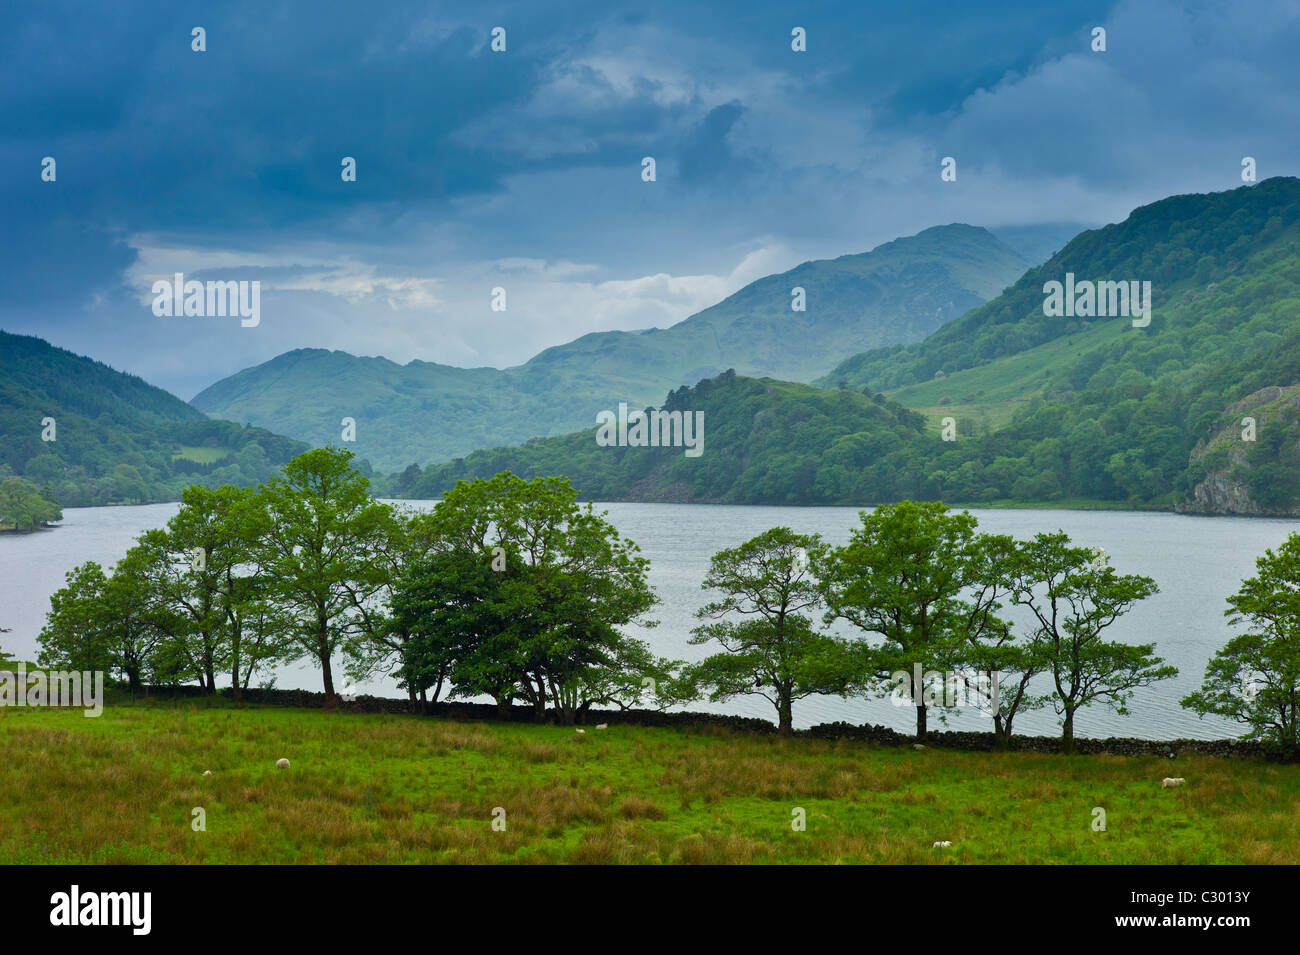 Hawthorn trees in Welsh landscape in Snowdonia National Park at Lake Llyn Gwynant, Gwynedd, Wales - Stock Image